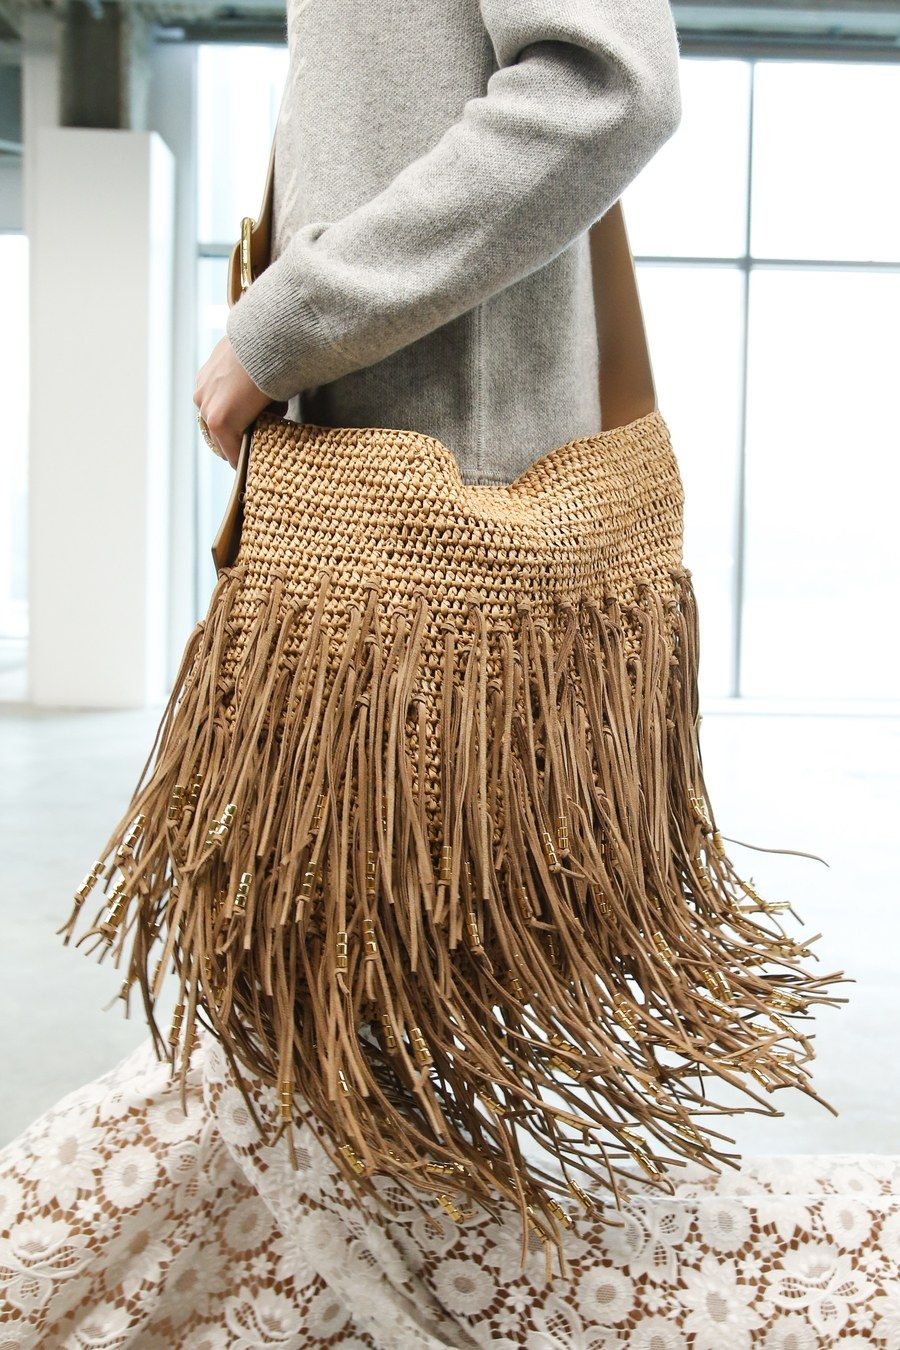 Michael Kors Handbags Spring 2019